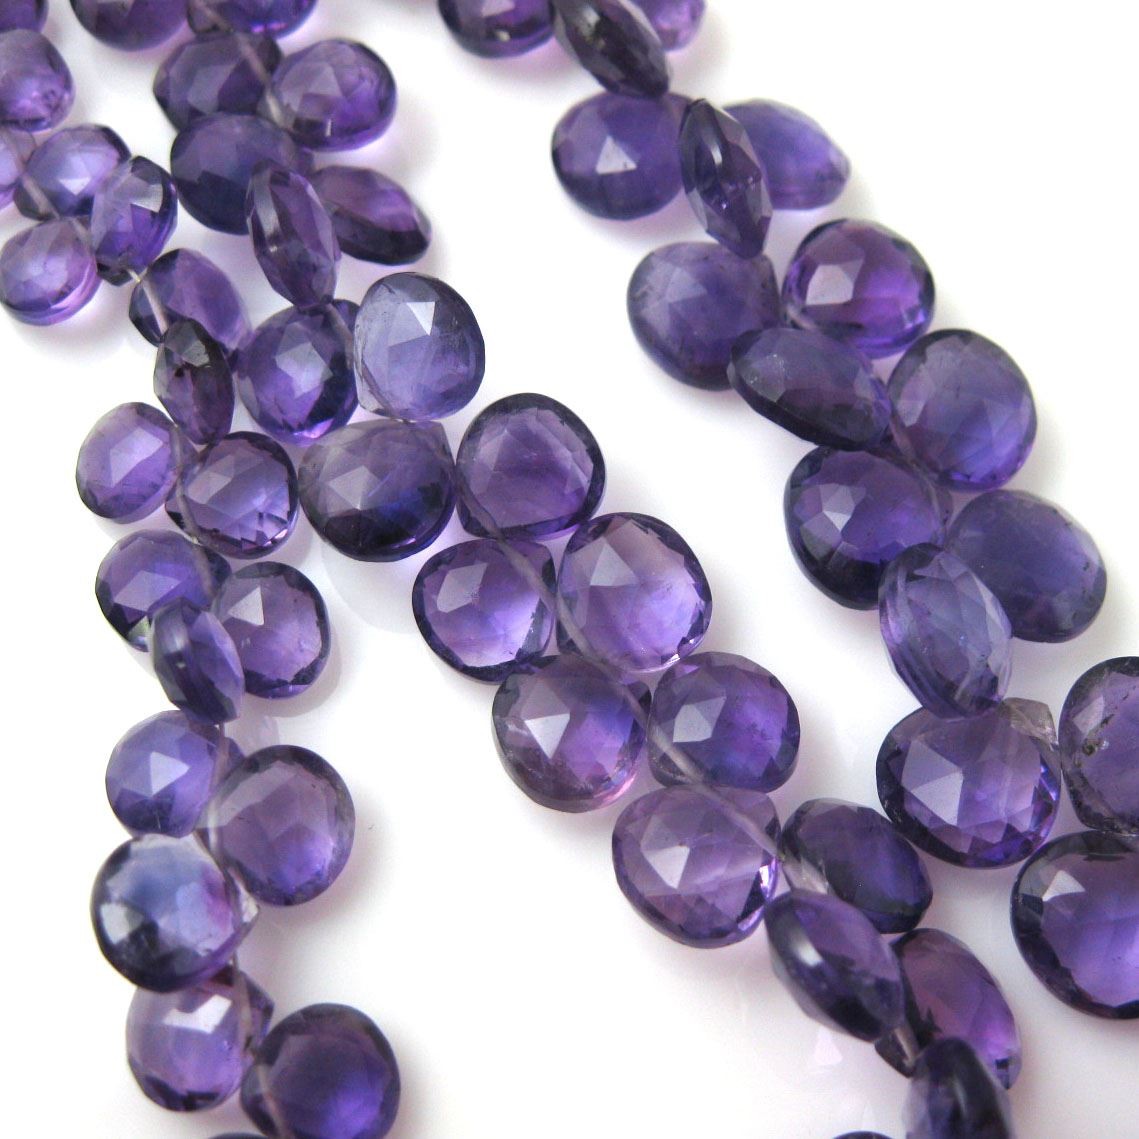 Semiprecious Gemstone Beads -100% Genuine Amethyst Gemstone Bead Faceted Heart Shape Briolette- Grade A/B - 9-11mm